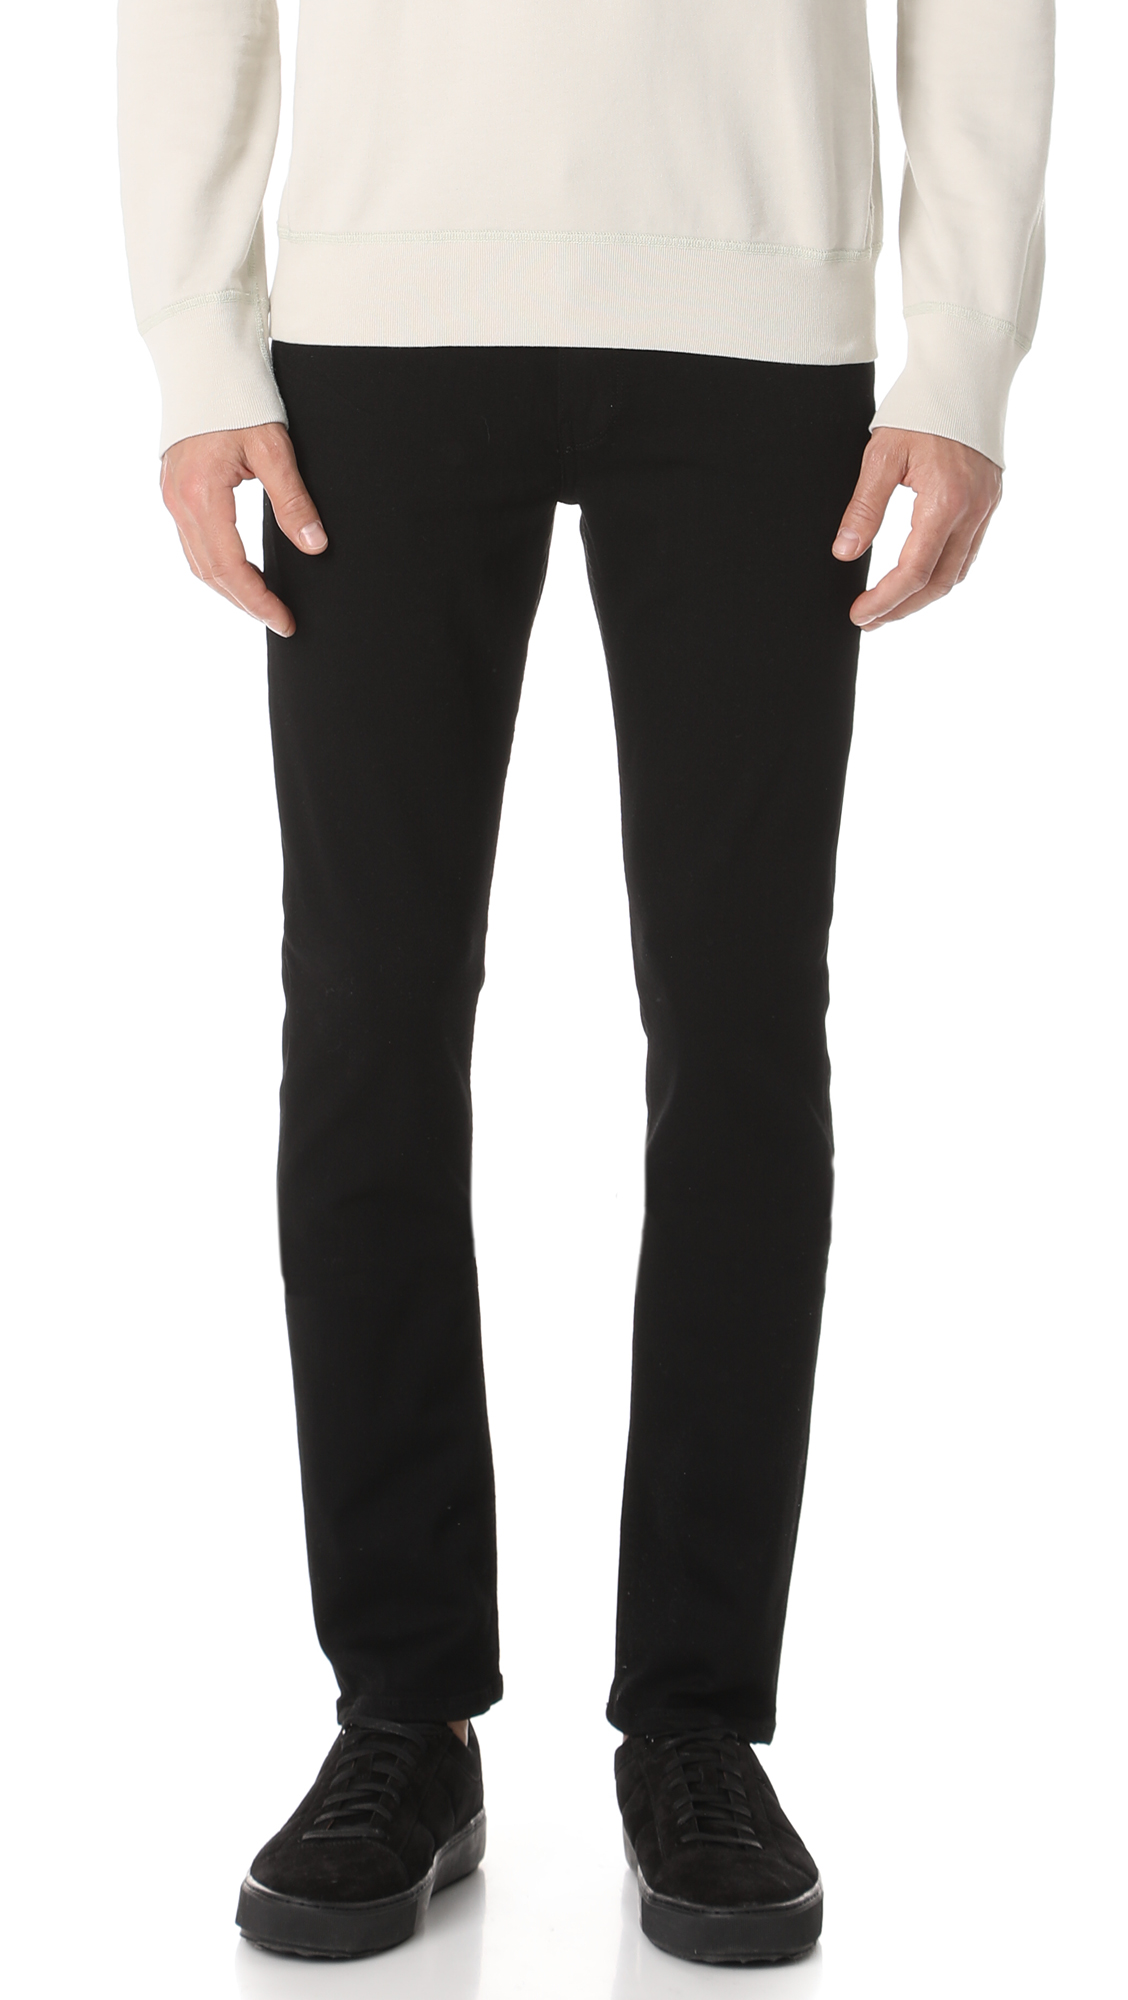 paige denim, jeans, skinny jeans, men's stretch jeans, black jeans